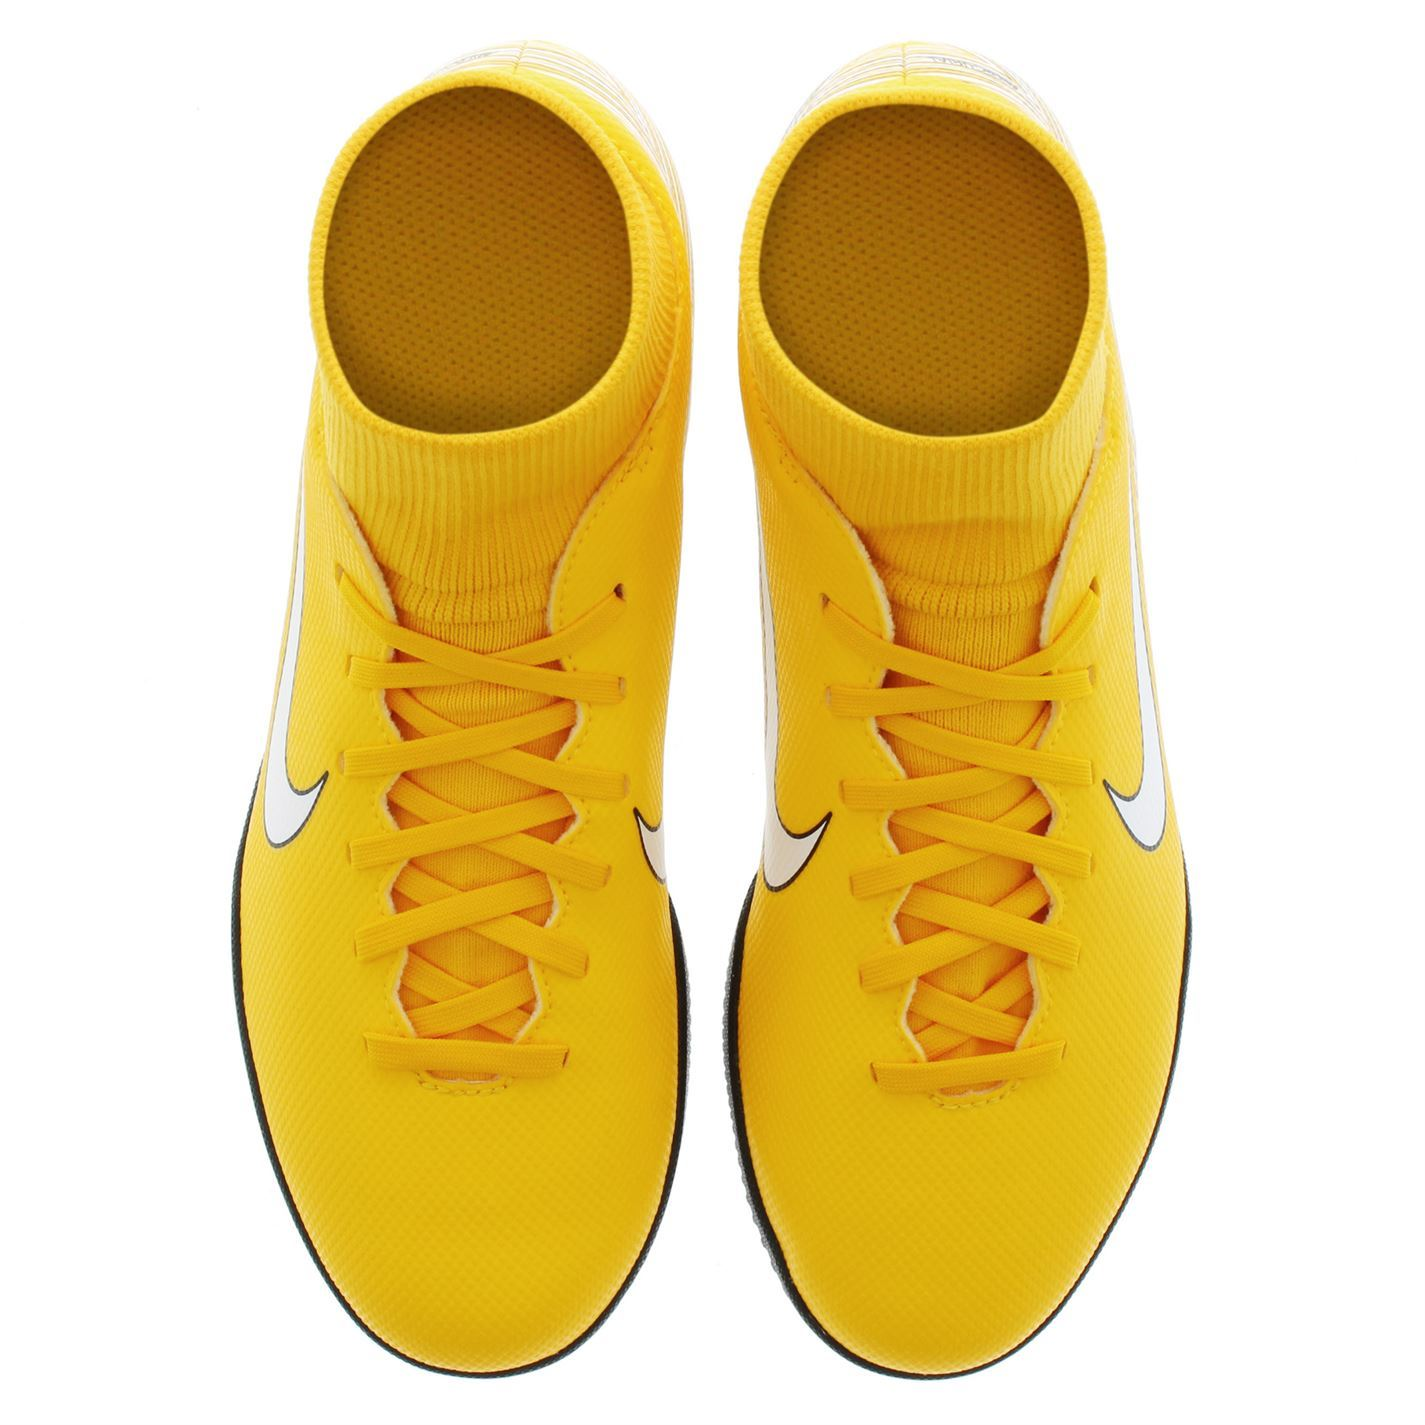 731373eff12 ... Nike Mercurial Club Neymar DF Indoor Football Trainers Mens Yellow  Soccer Shoes